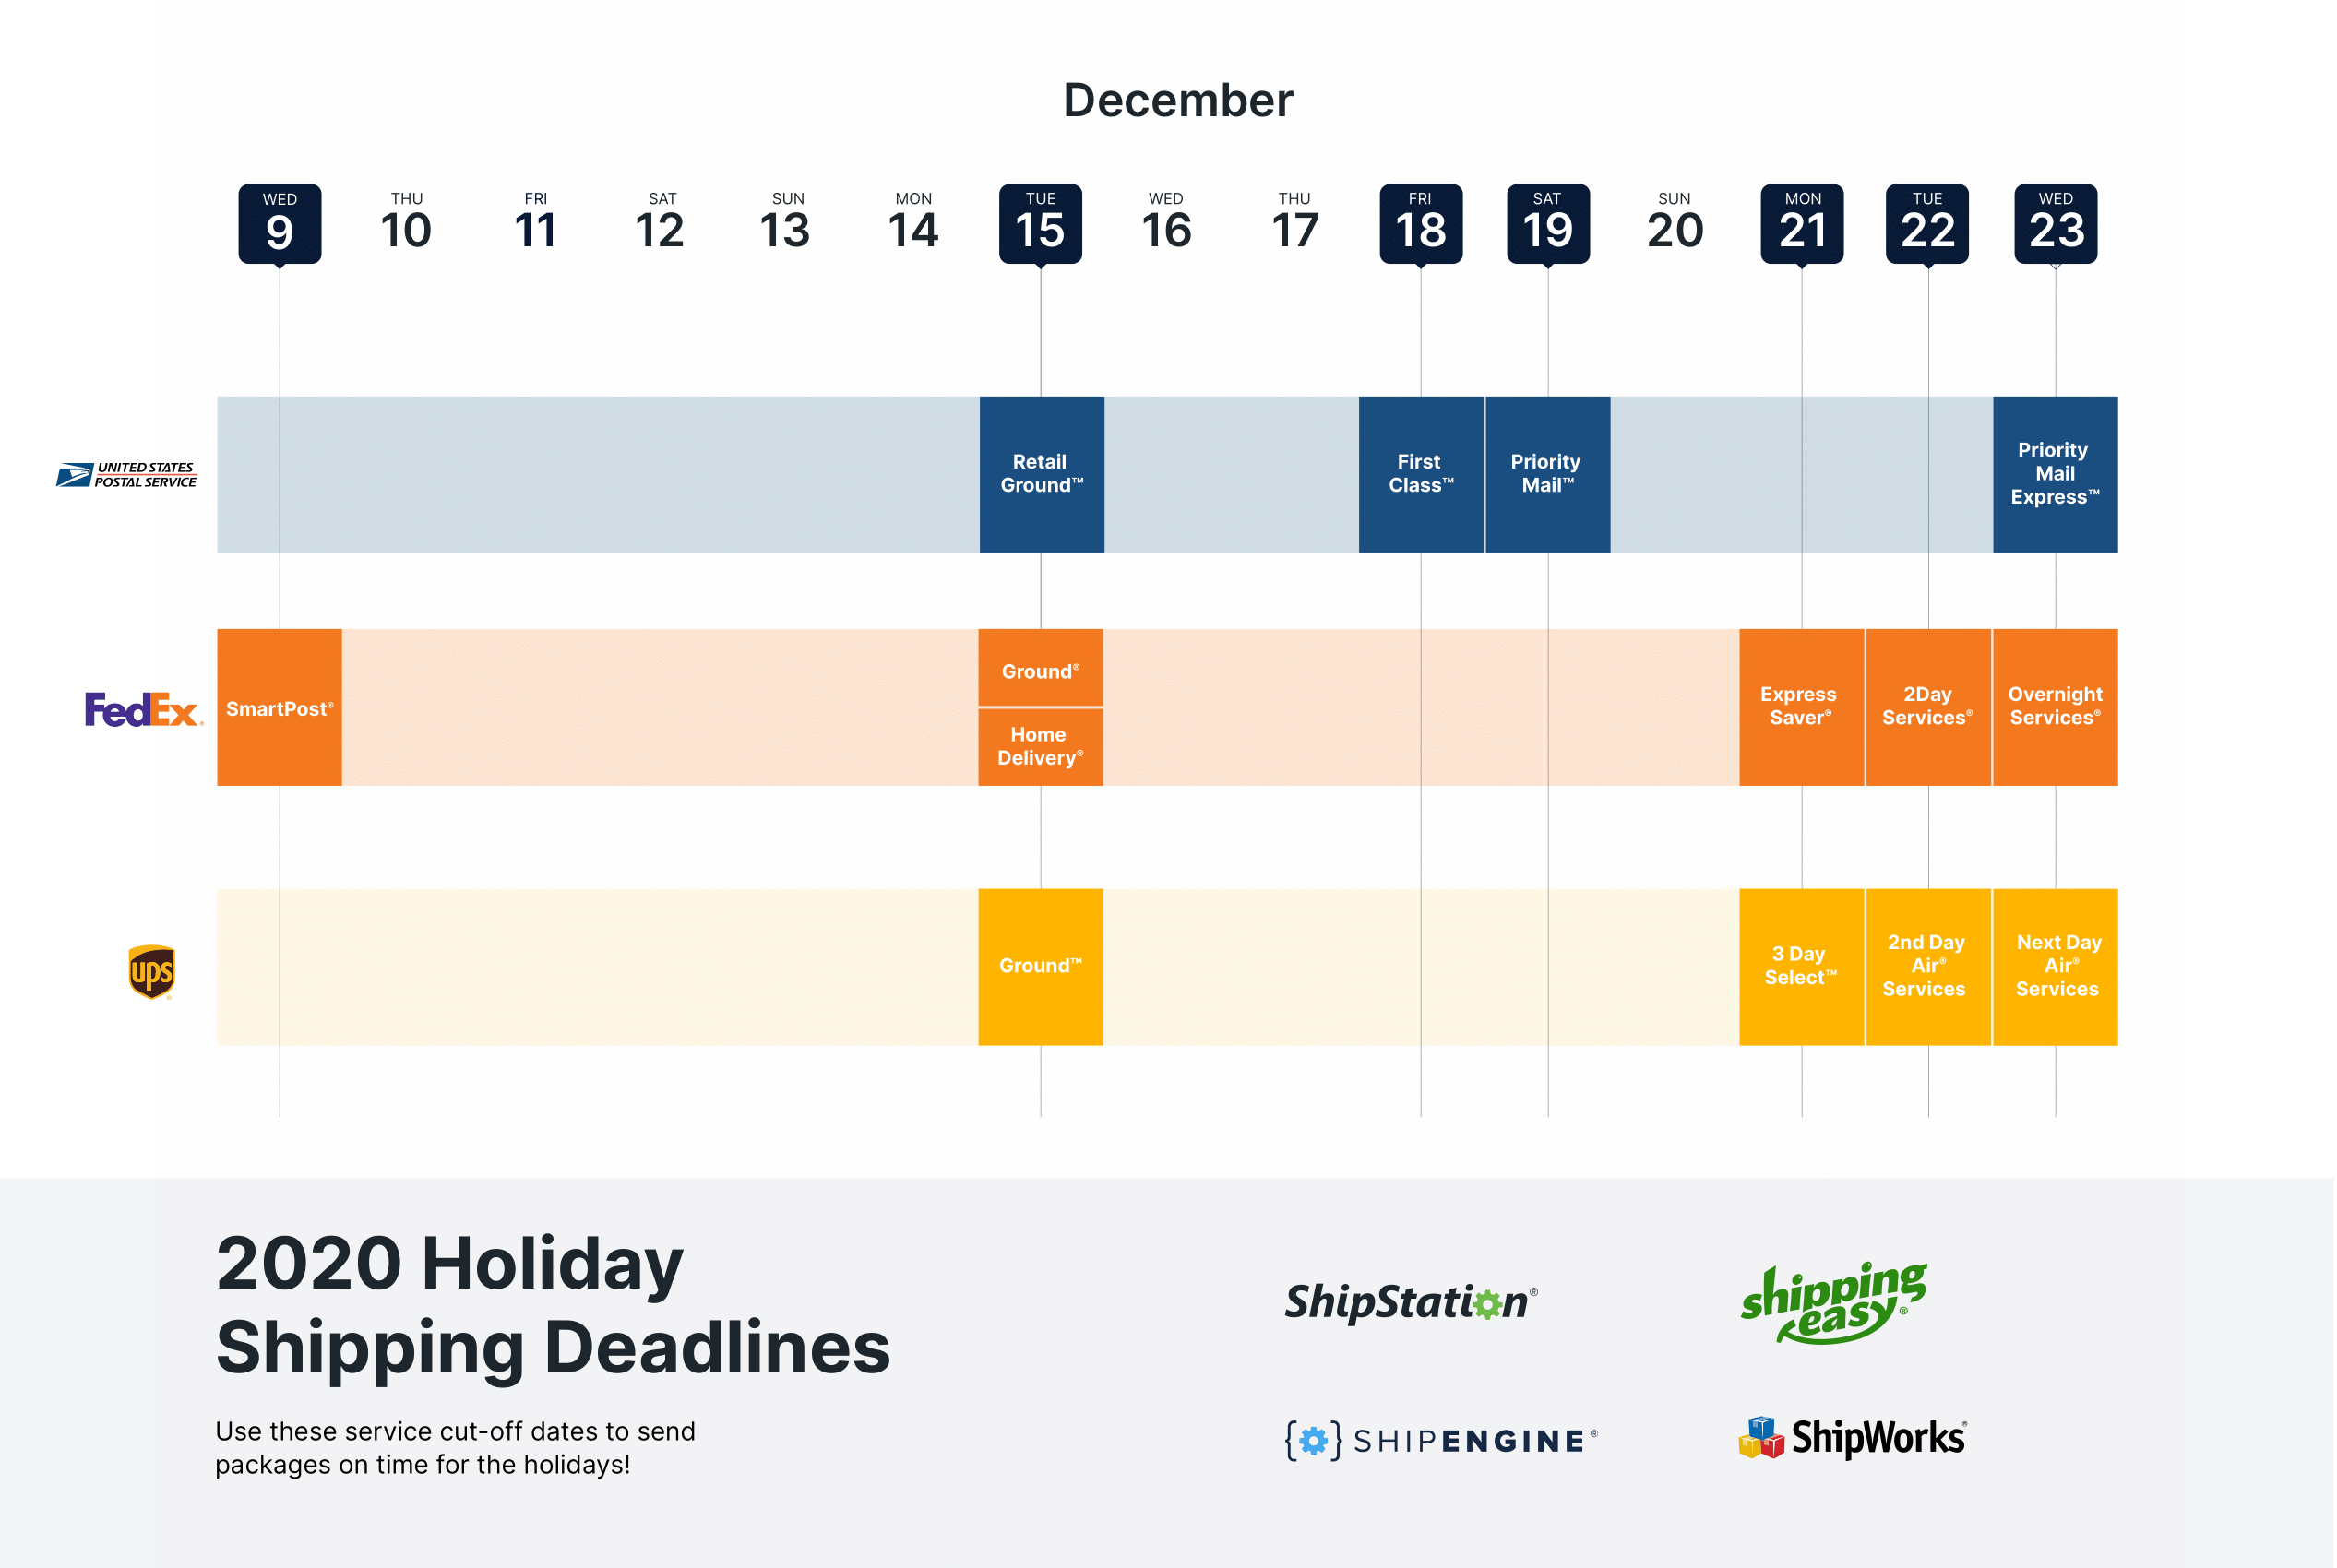 Usps Deadlines For Christmas 2021 Fedex Ups And Usps Holiday Shipping Deadlines For 2020 Shipstation